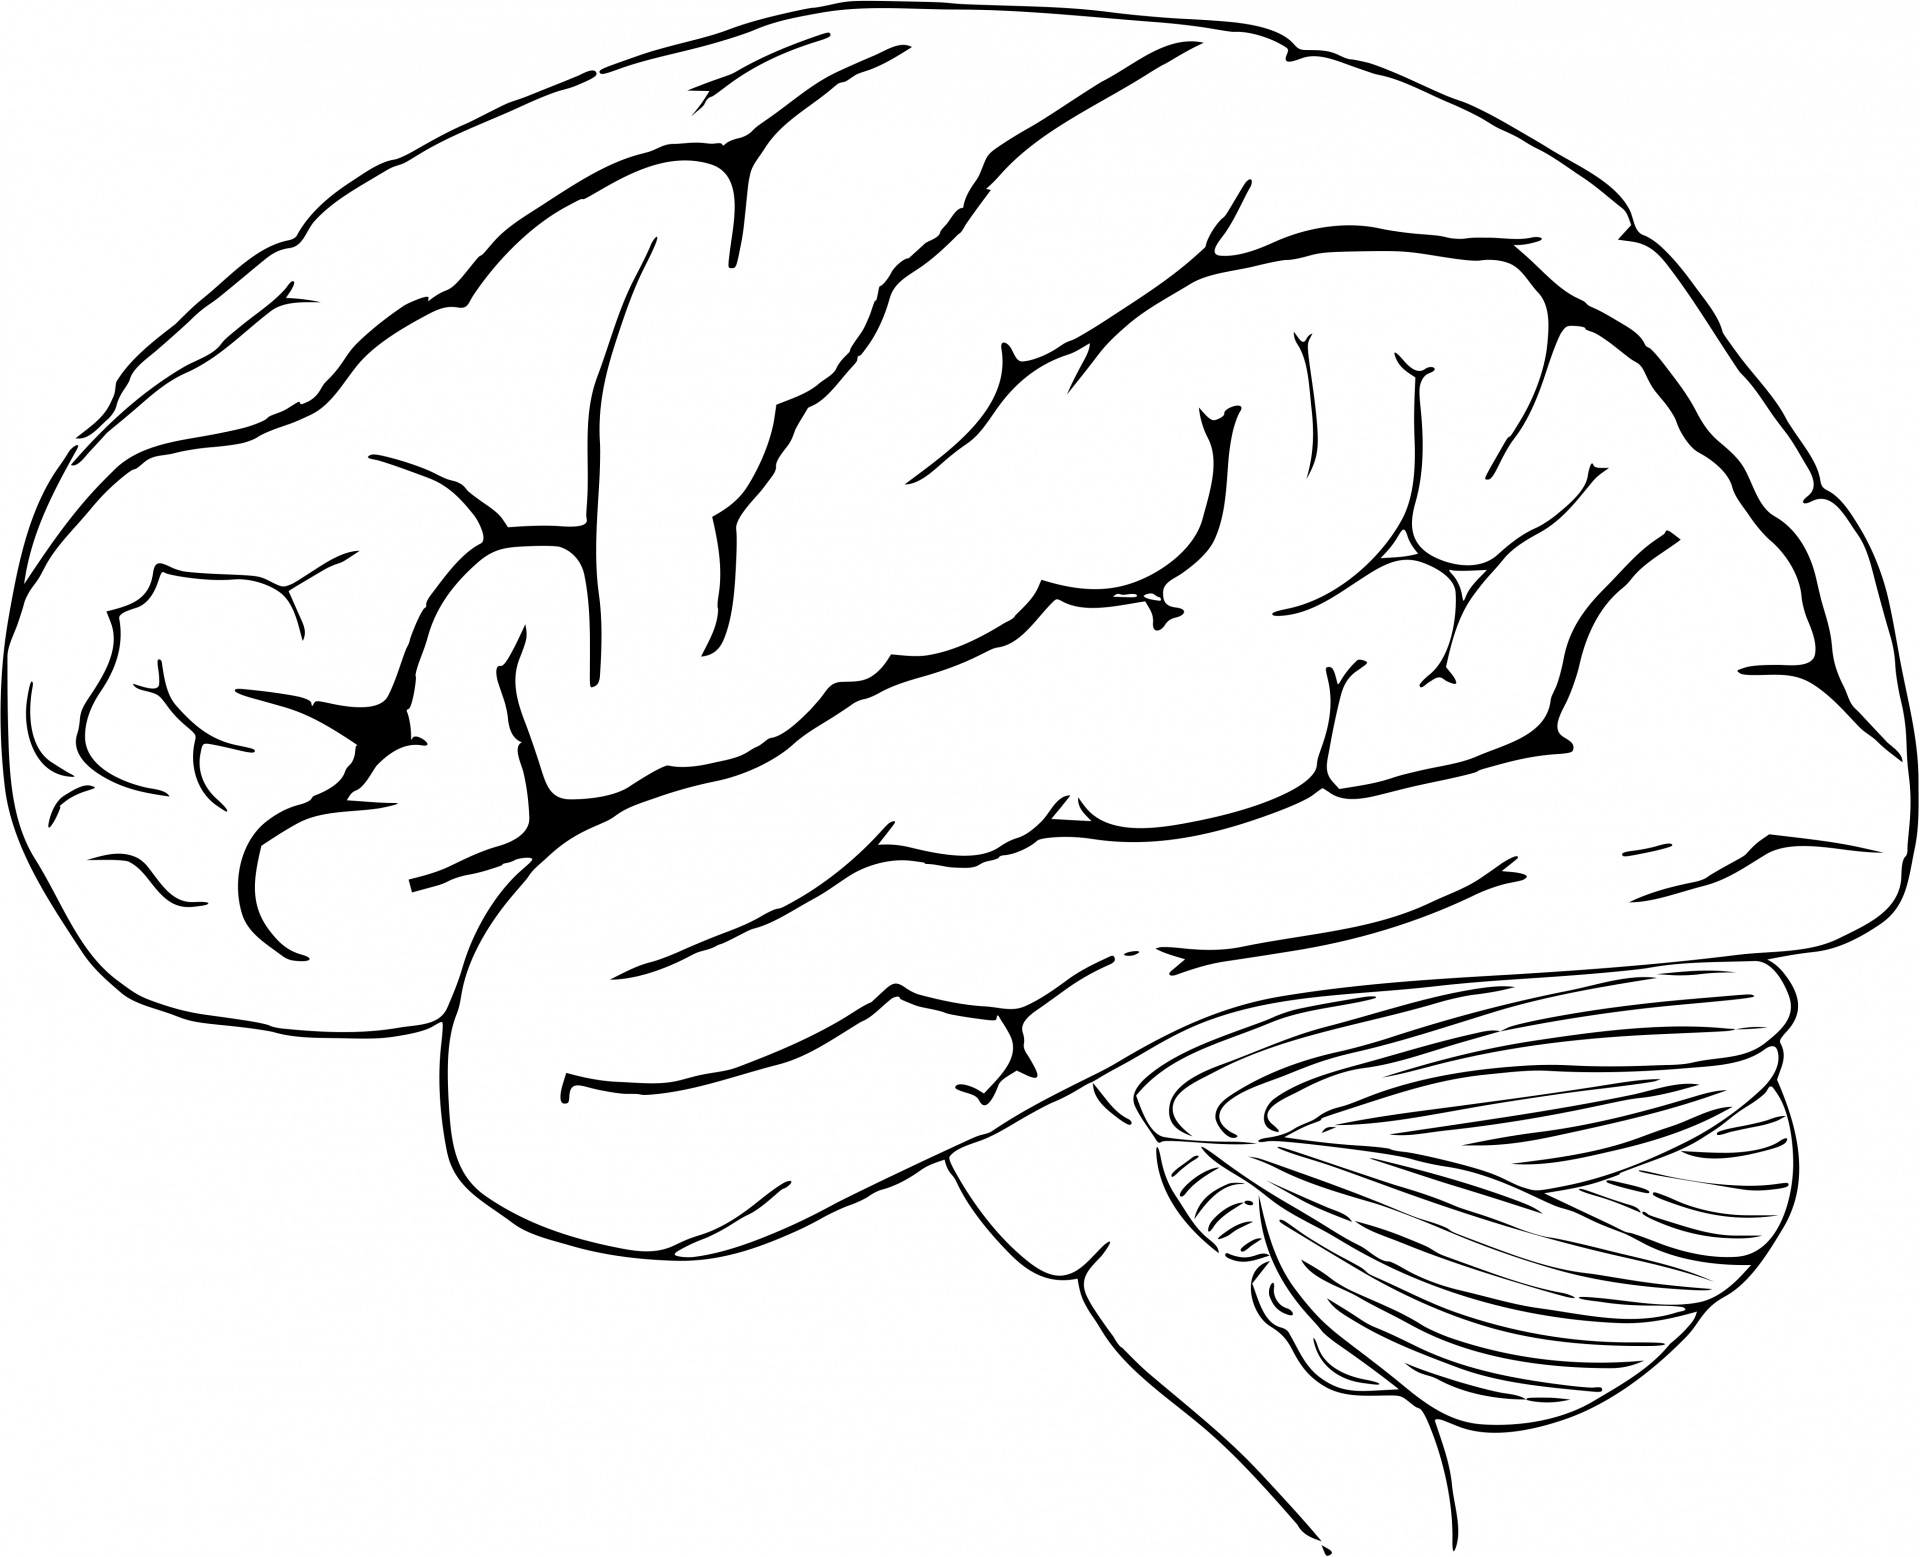 Drawn brains public domain Human Domain Photo Stock Brain